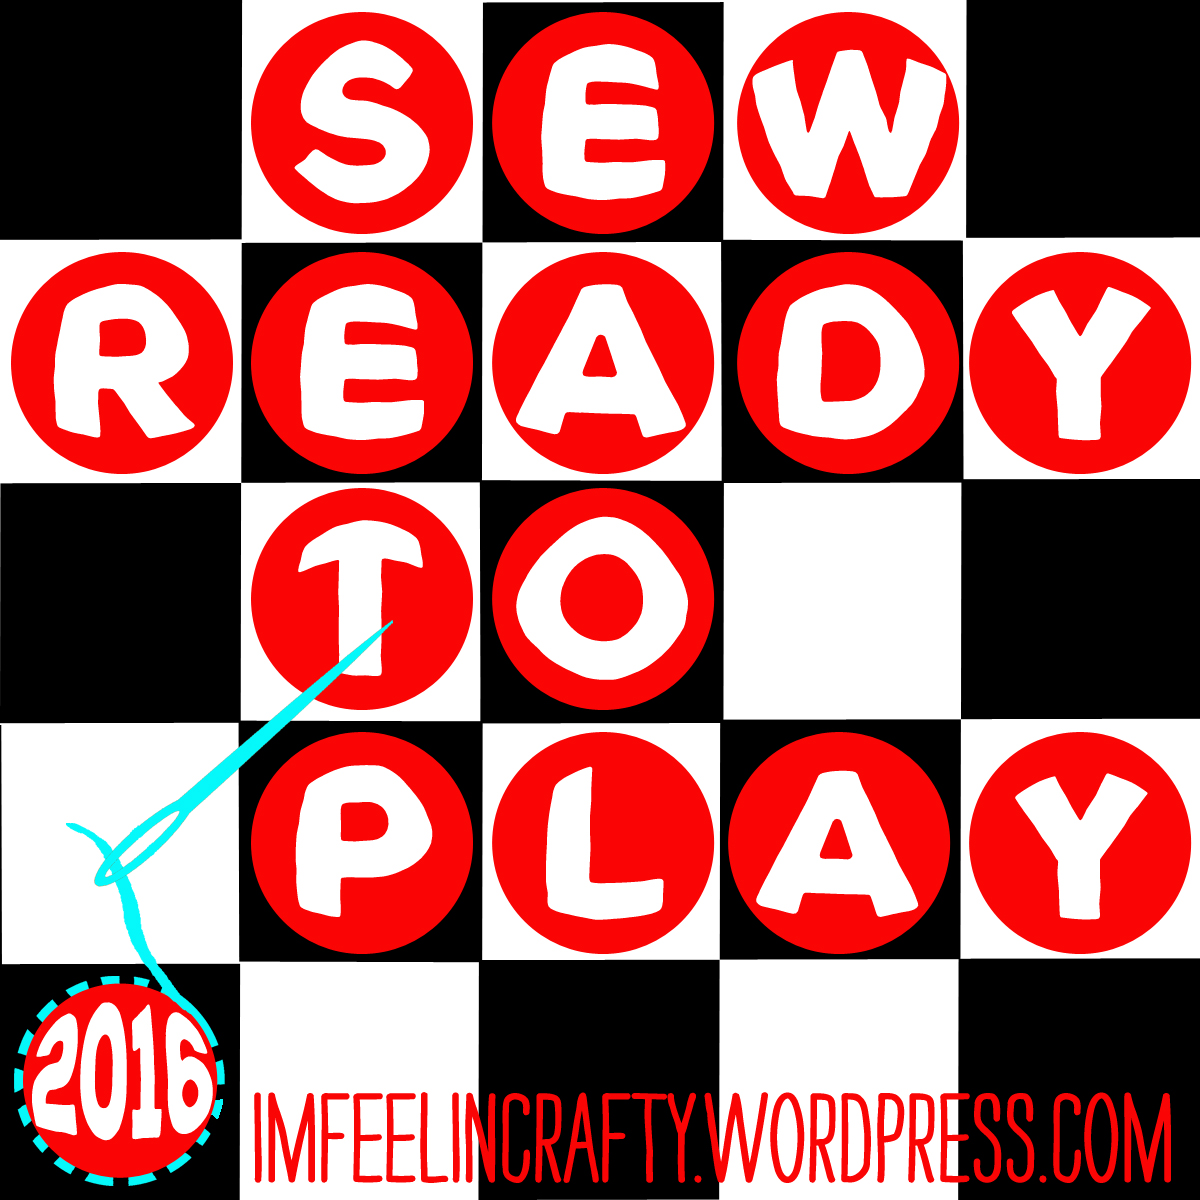 Sew Ready to Play